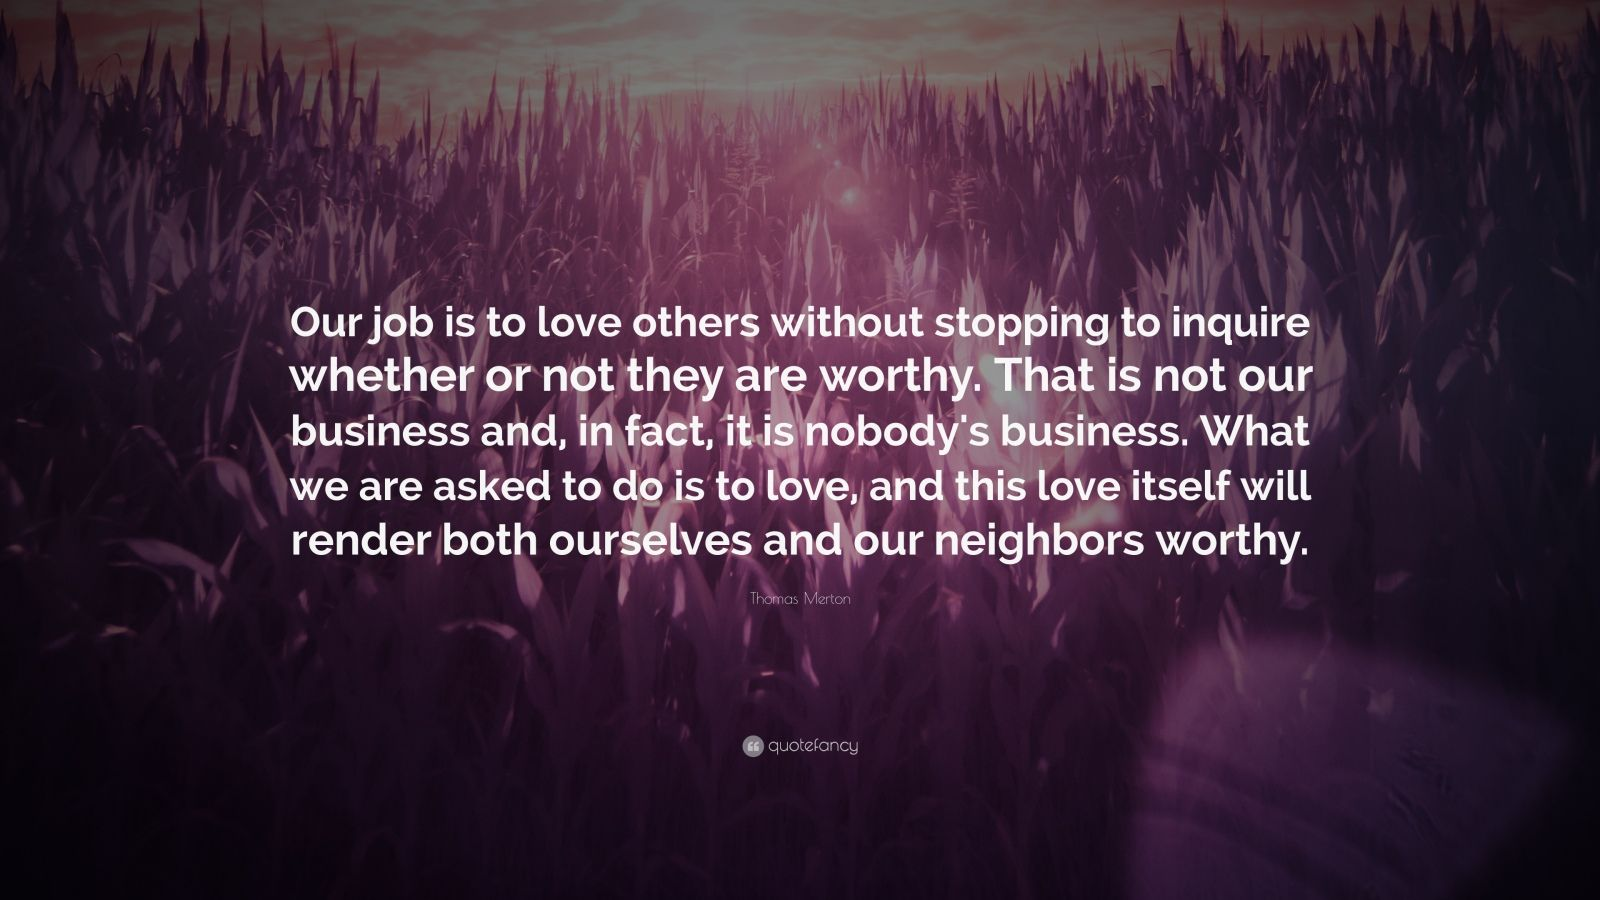 "Thomas Merton Quote: ""Our job is to love others without stopping to inquire whether or not they are worthy. That is not our business and, in fact, it is nobody's business. What we are asked to do is to love, and this love itself will render both ourselves and our neighbors worthy."""